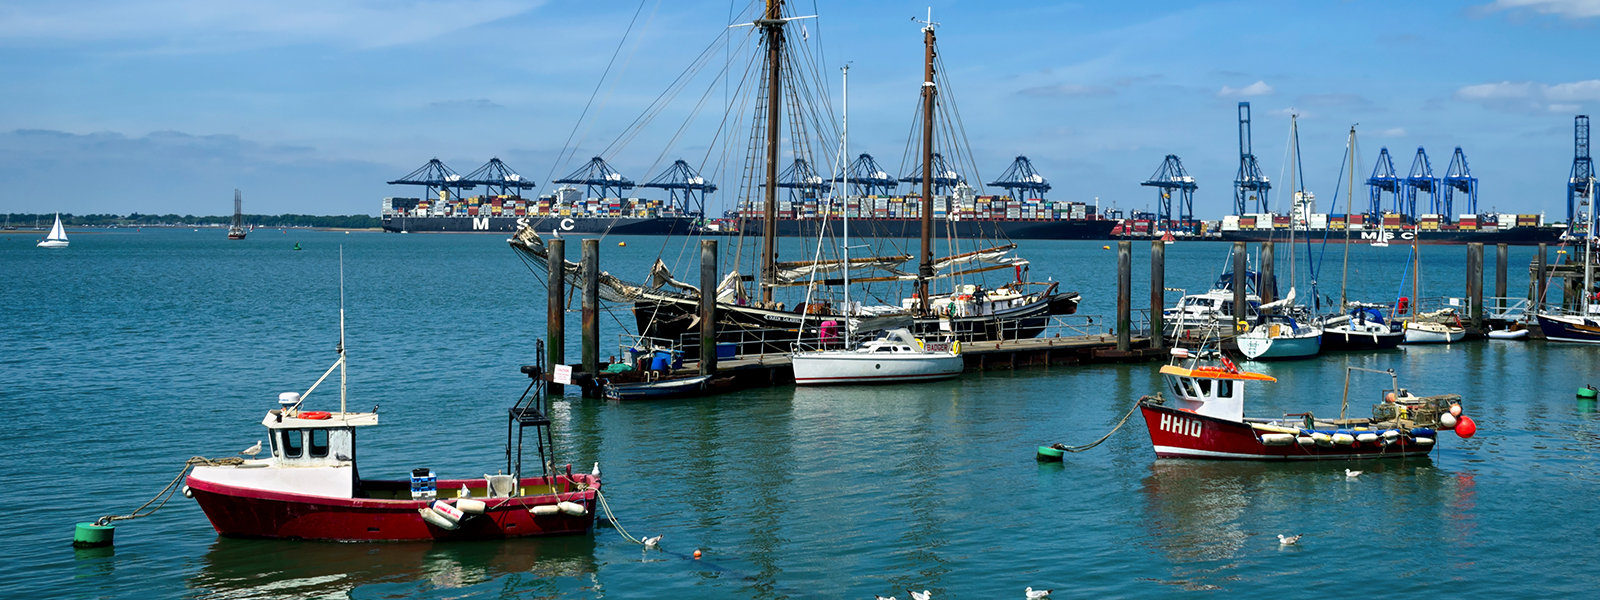 Things to do in Harwich: Ships, Submarines and Seals